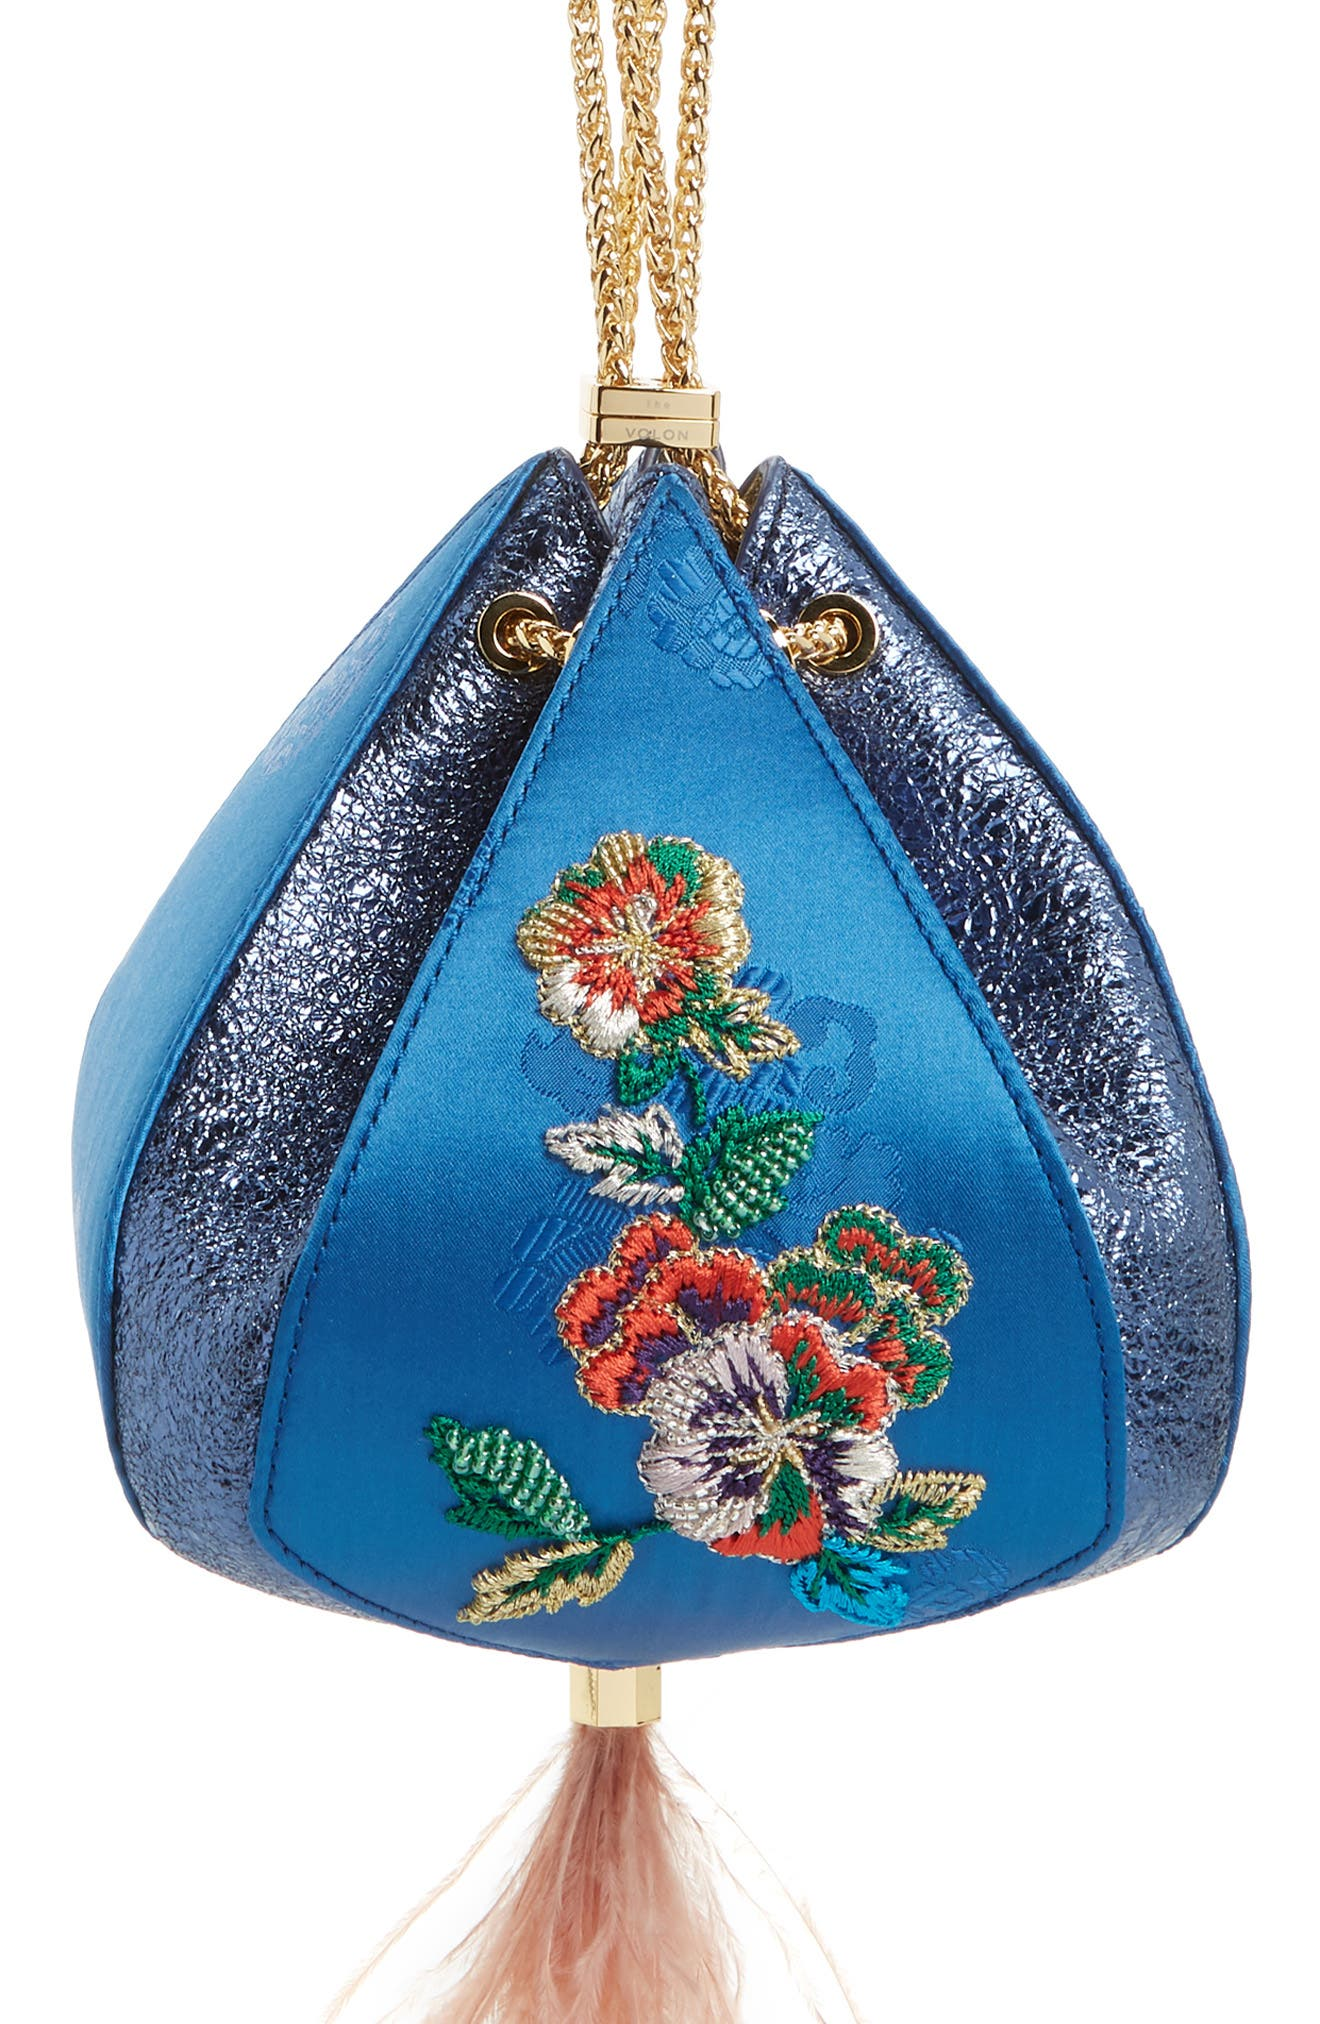 THE VOLON, Metallic Cindy Embroidered Satin & Leather Clutch, Main thumbnail 1, color, BLUE